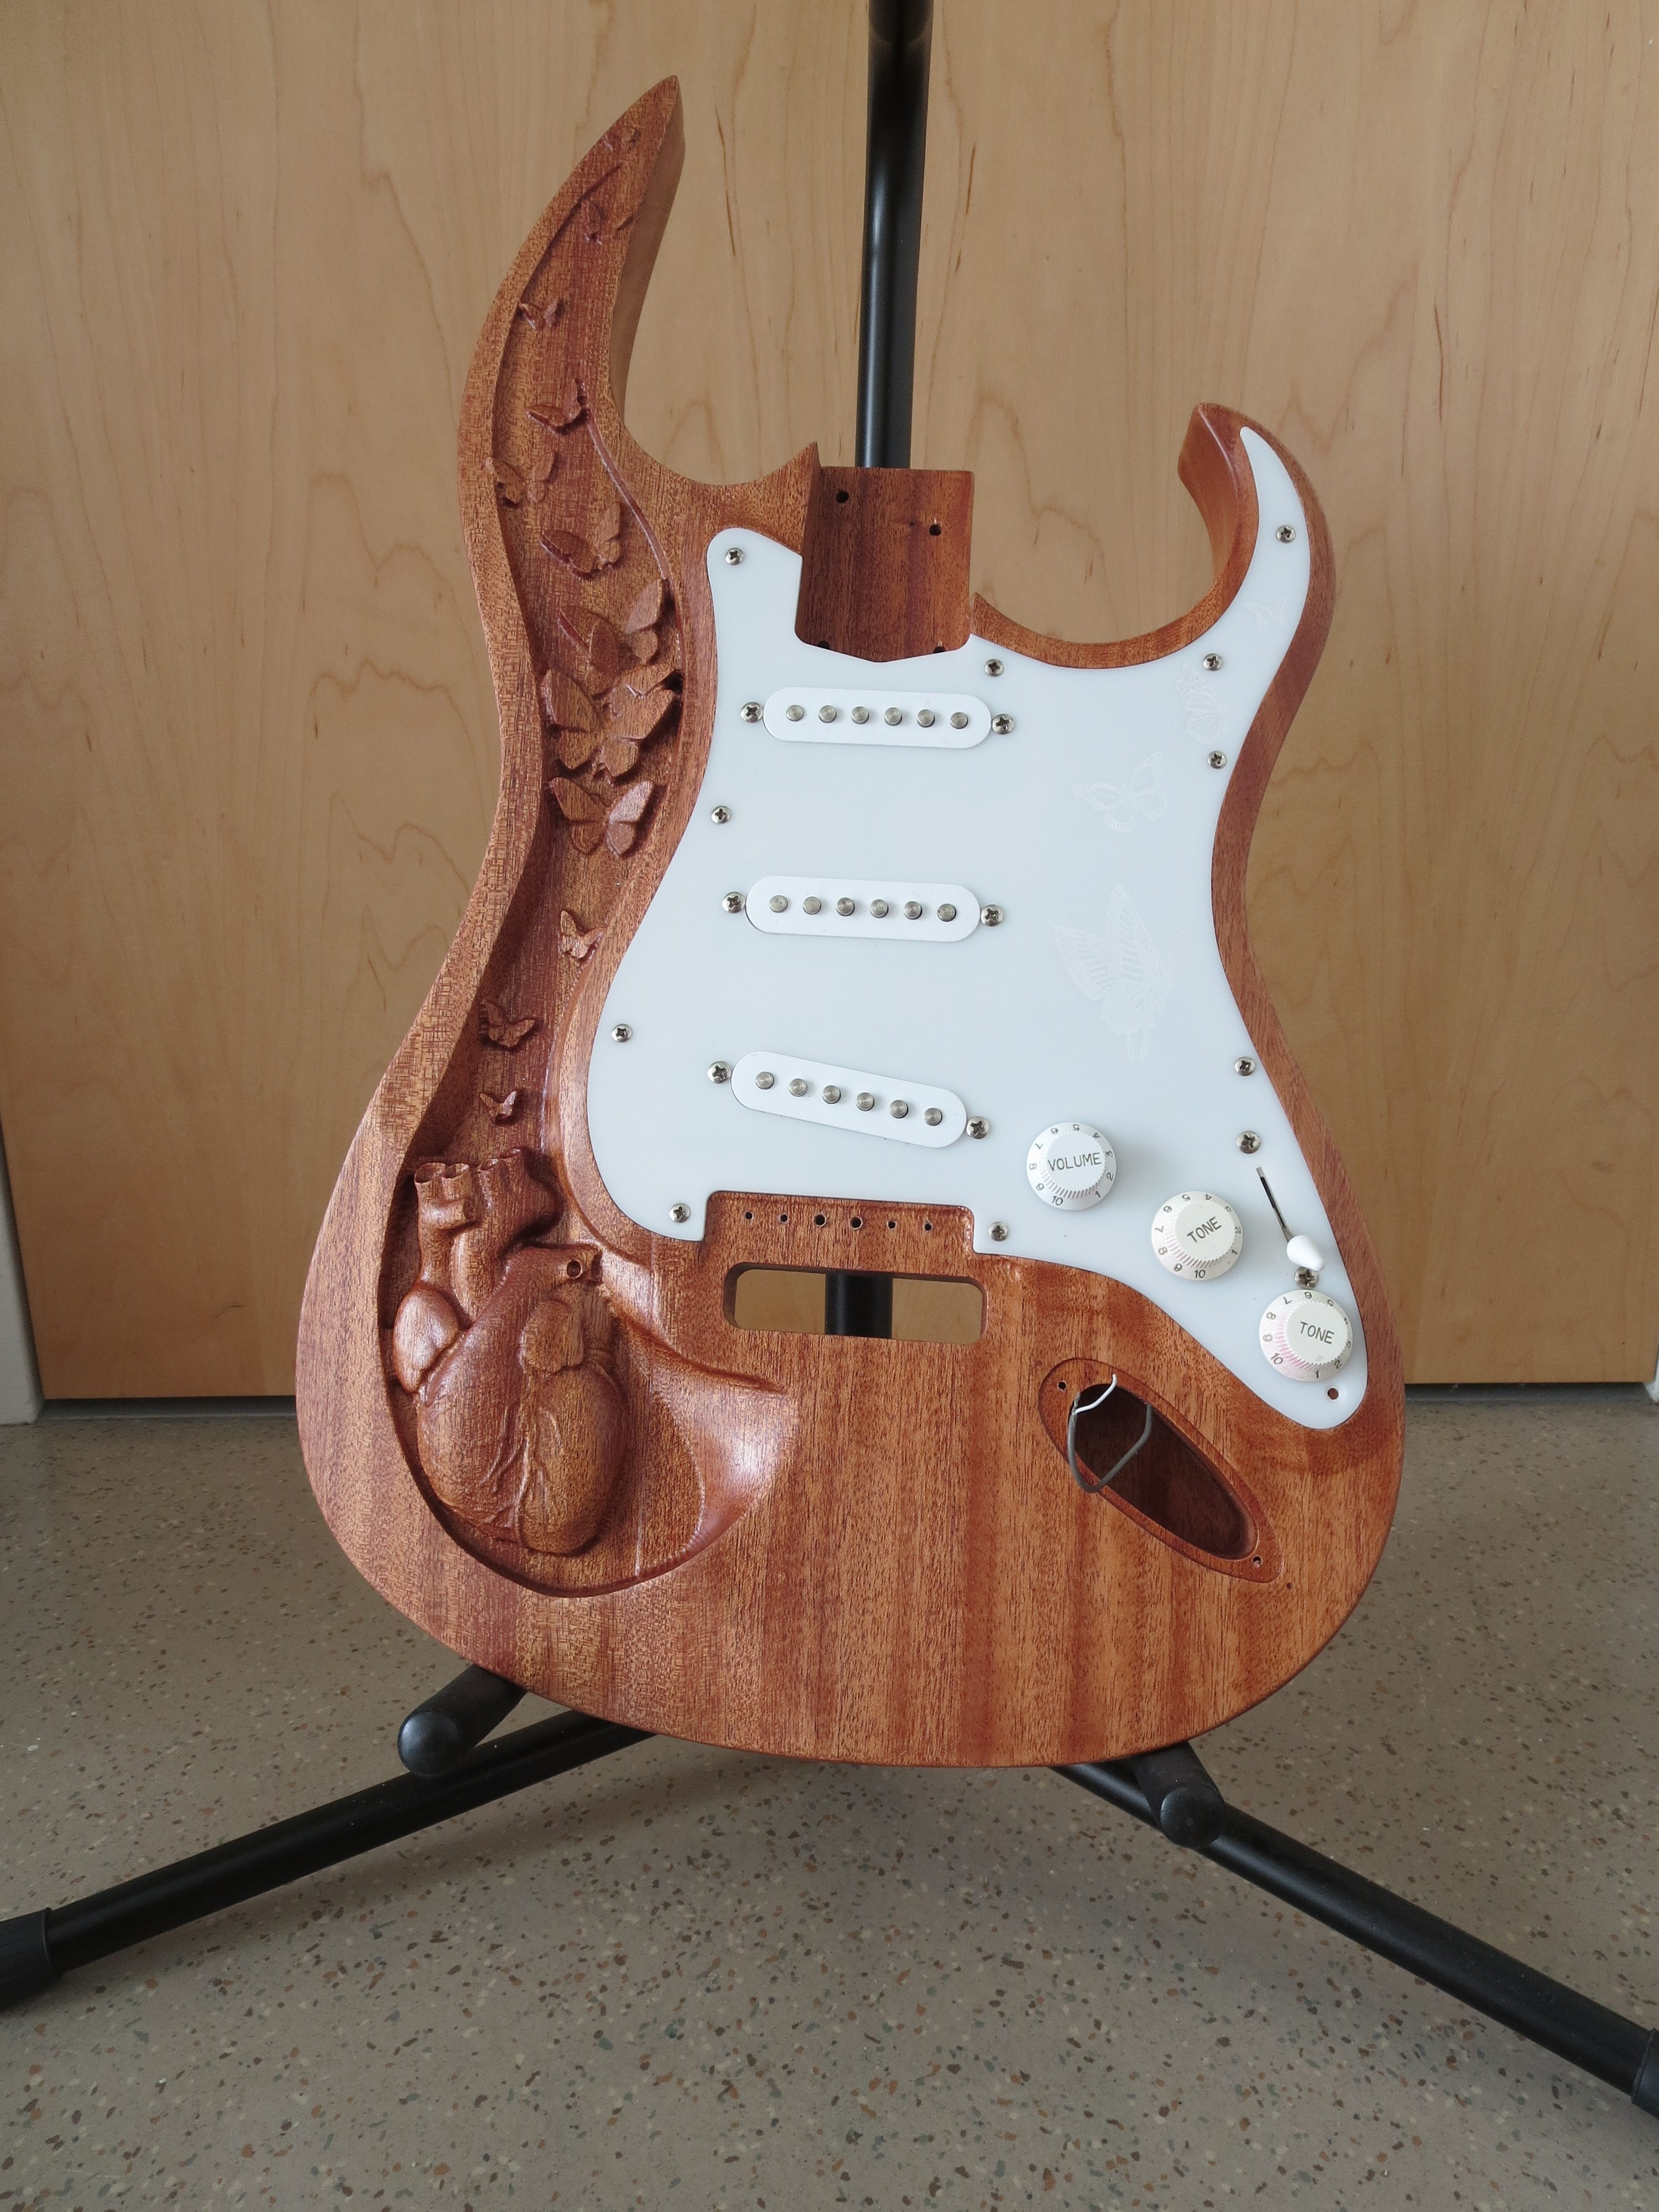 Electric Guitar Build Bray Lab What Wiring Mods Do You Have Page 3 Fender Stratocaster Which Would Cover The Back Pocket That I Had Created These Parts Took Several Tries To Get Right Especially Because Such Strangely